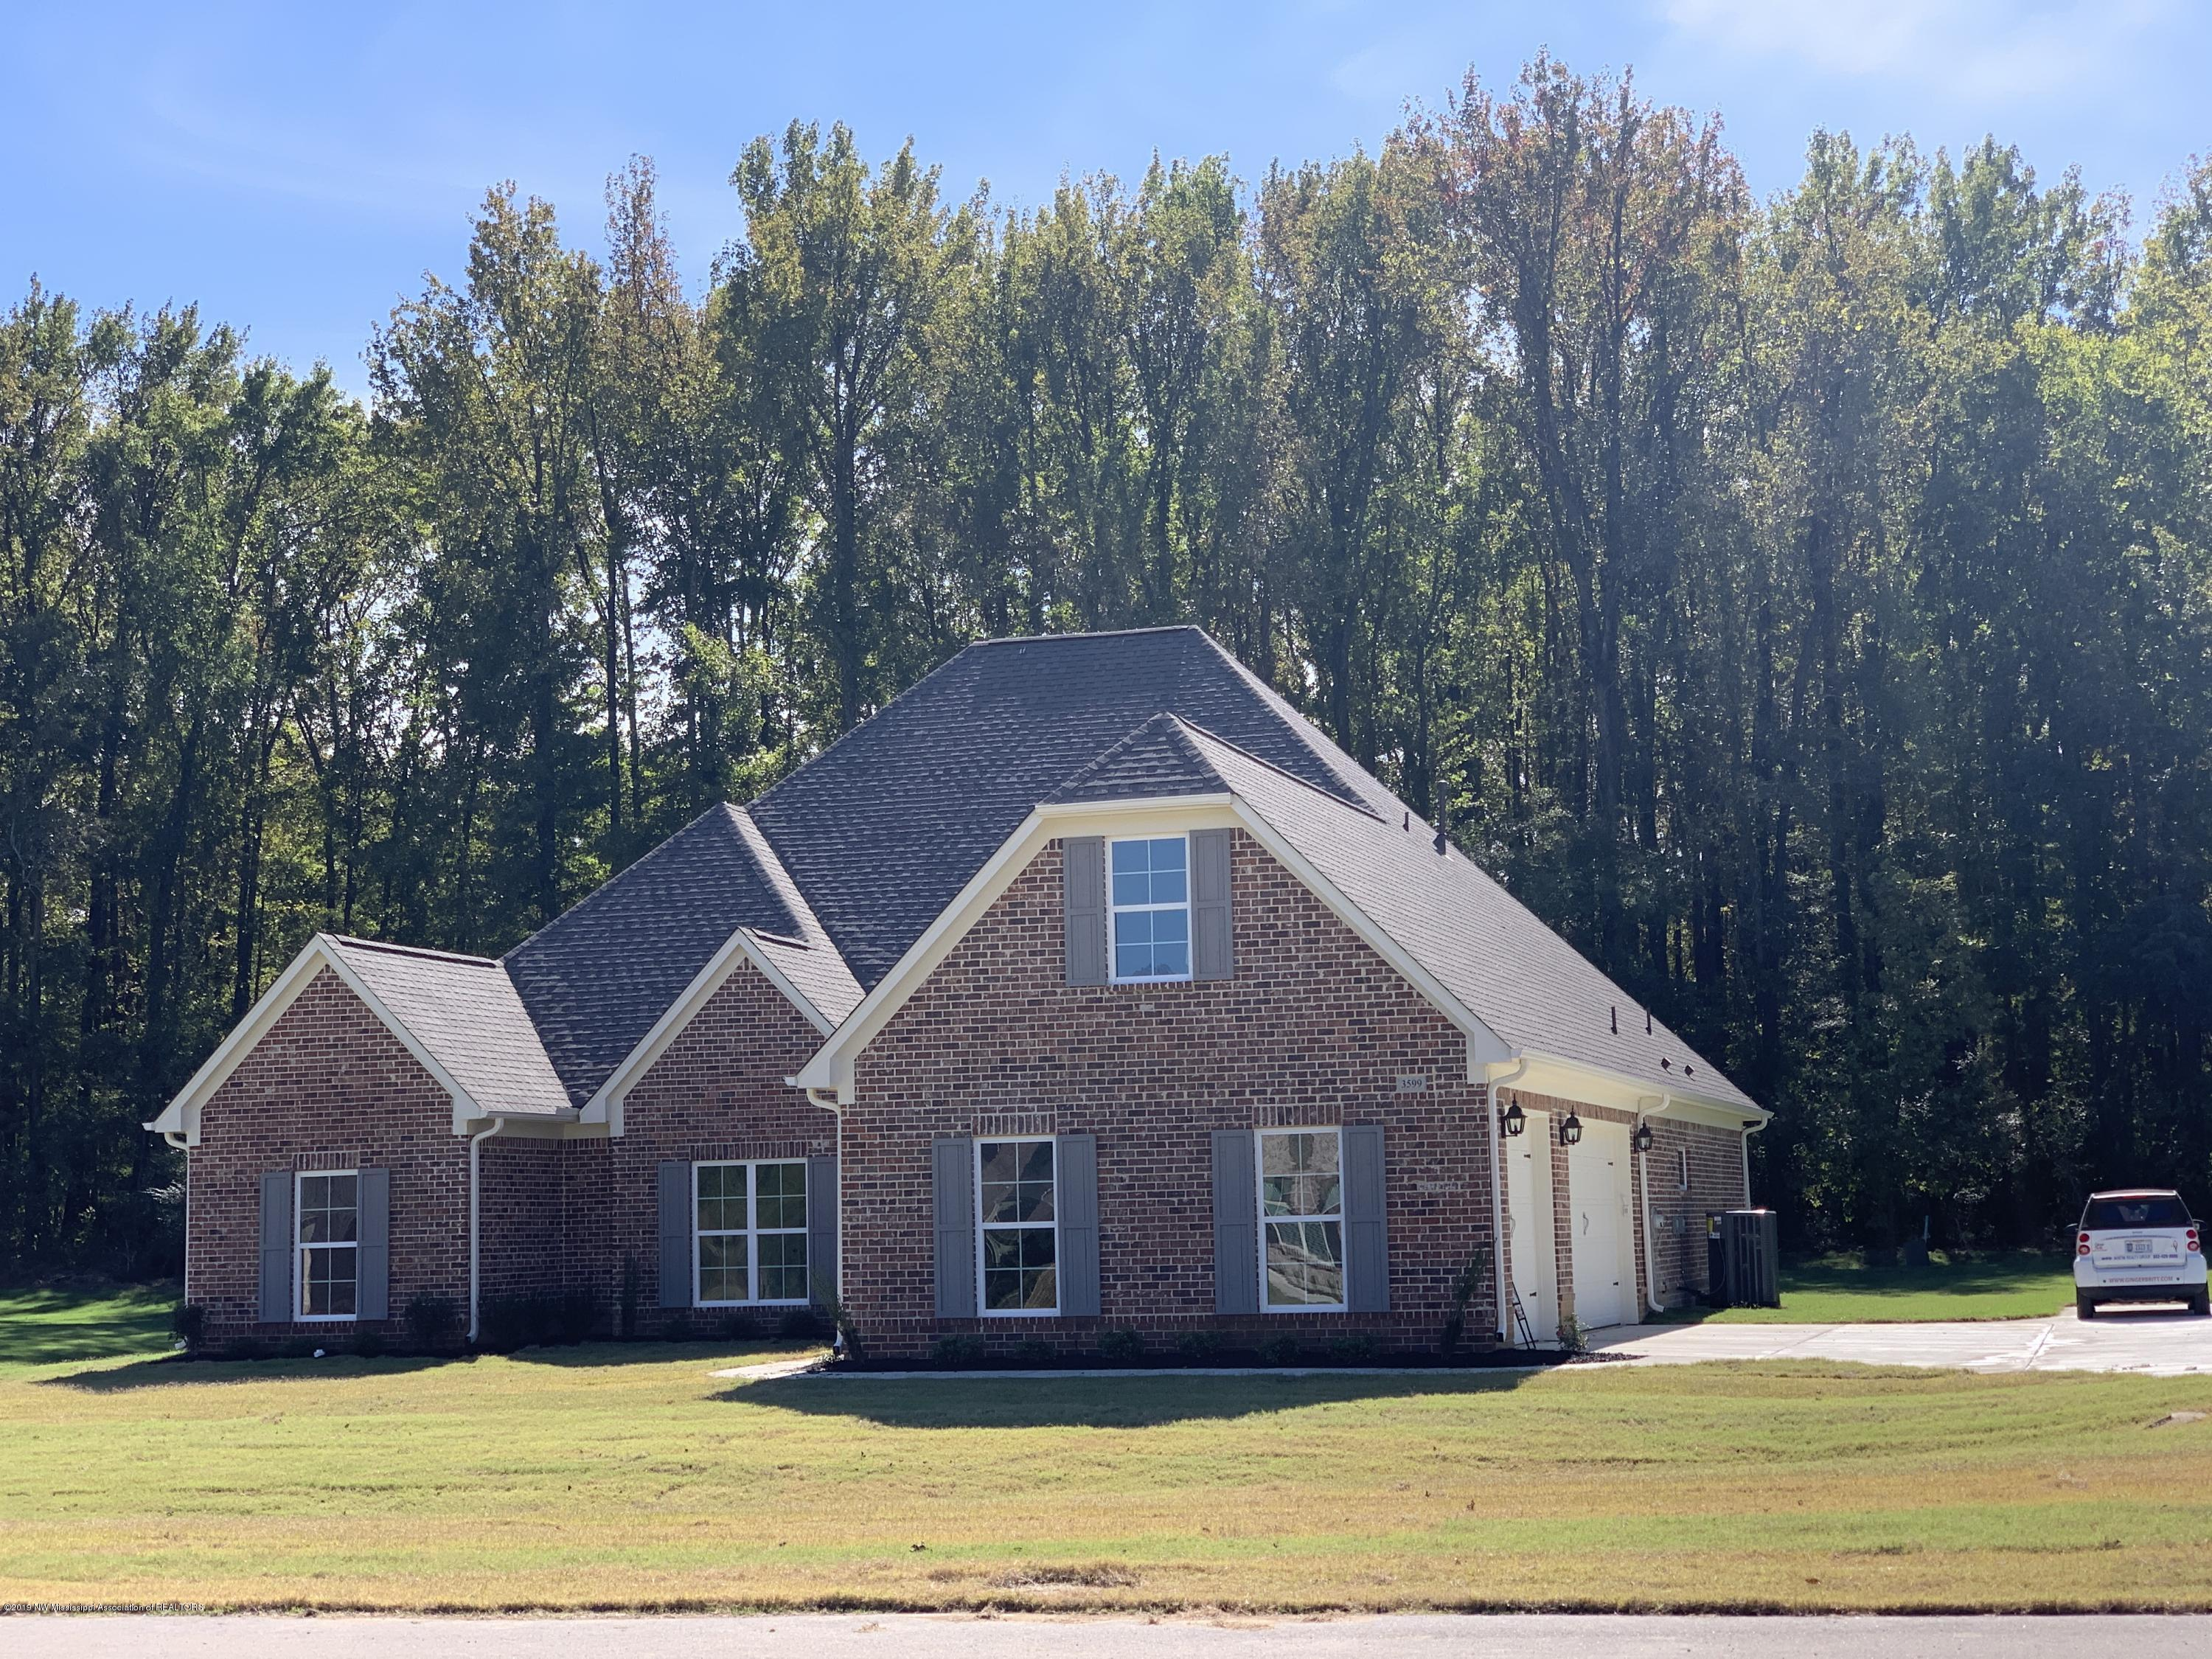 3599 Bailey Lane, Southaven, Mississippi